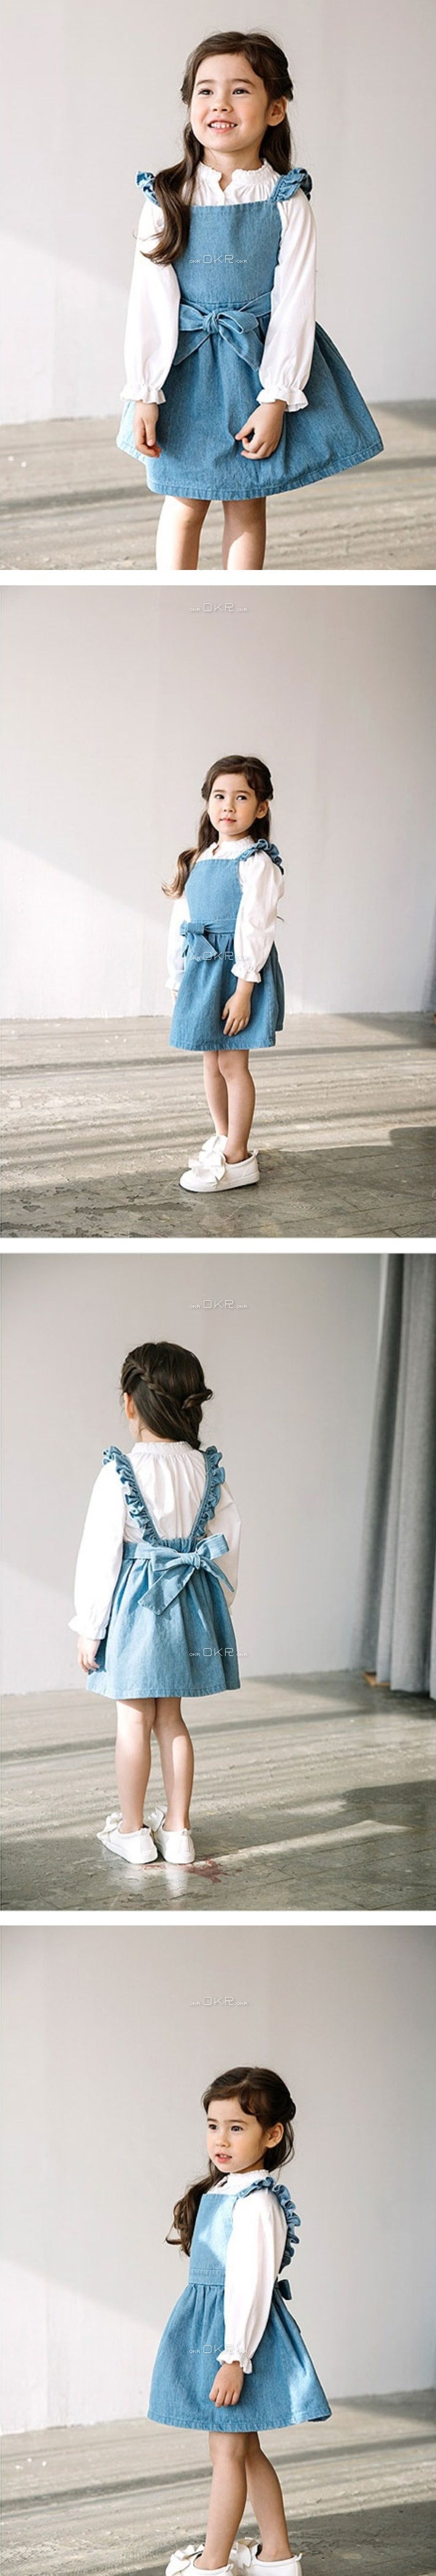 E.RU - Korean Children Fashion - #Kfashion4kids - Beauty Suspender Skirt